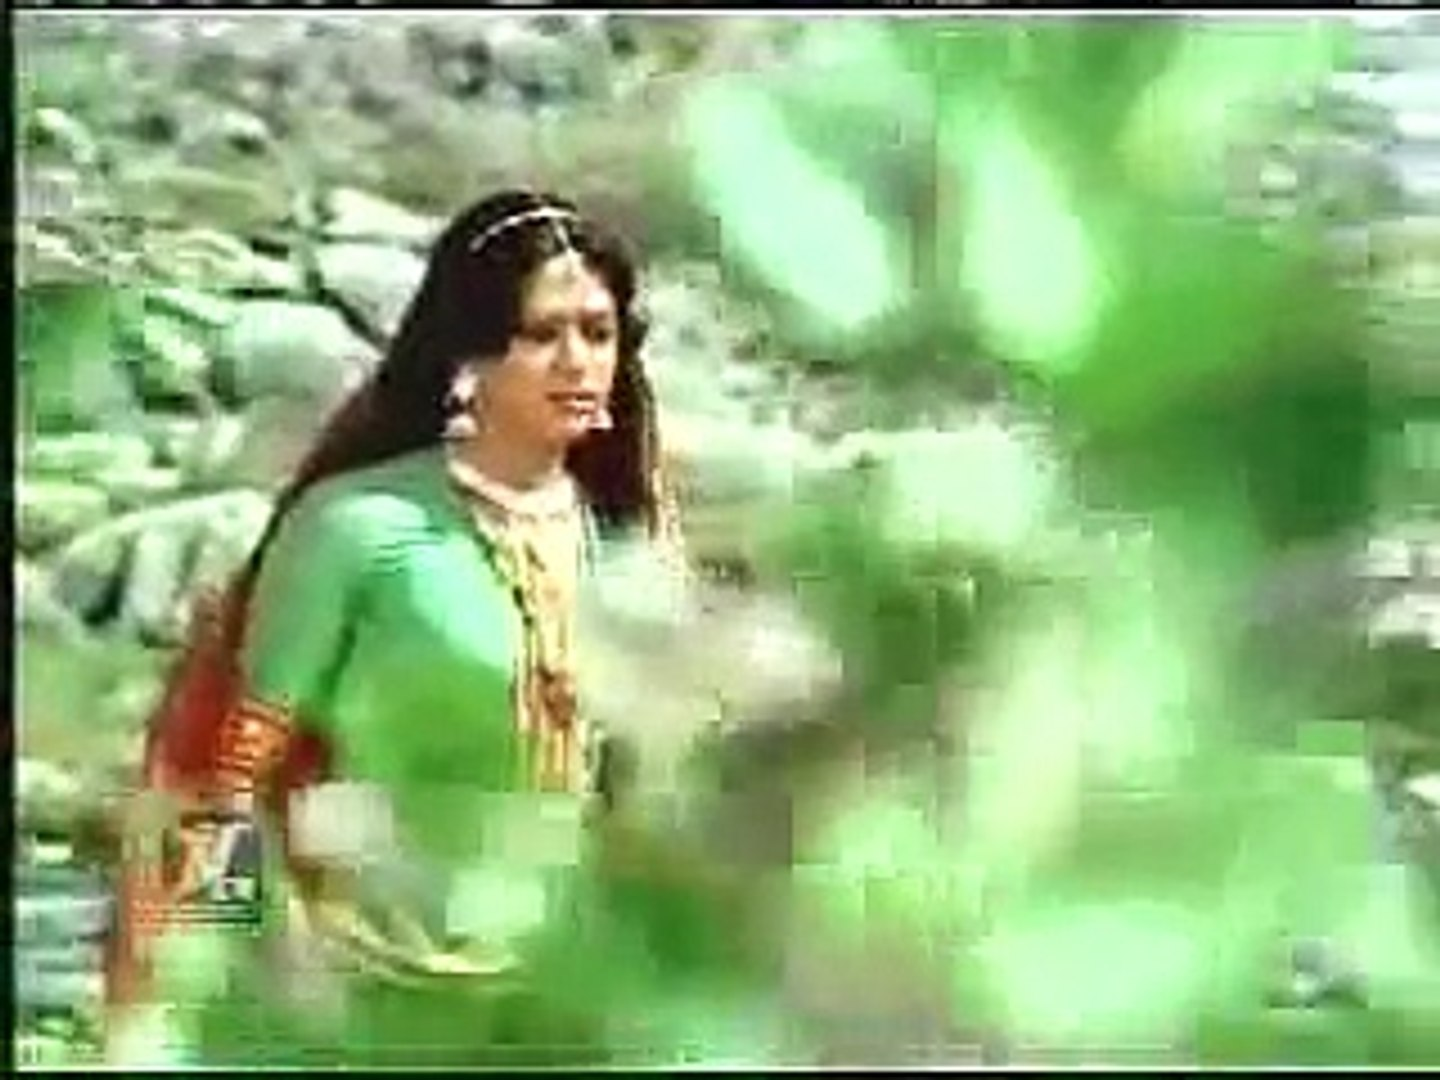 Old Hindi Songs Video Dailymotion Hindi videos, download hindi video song, hindi song video in hd uhd 4k quality daily updated lot's of videos page 2. old hindi songs